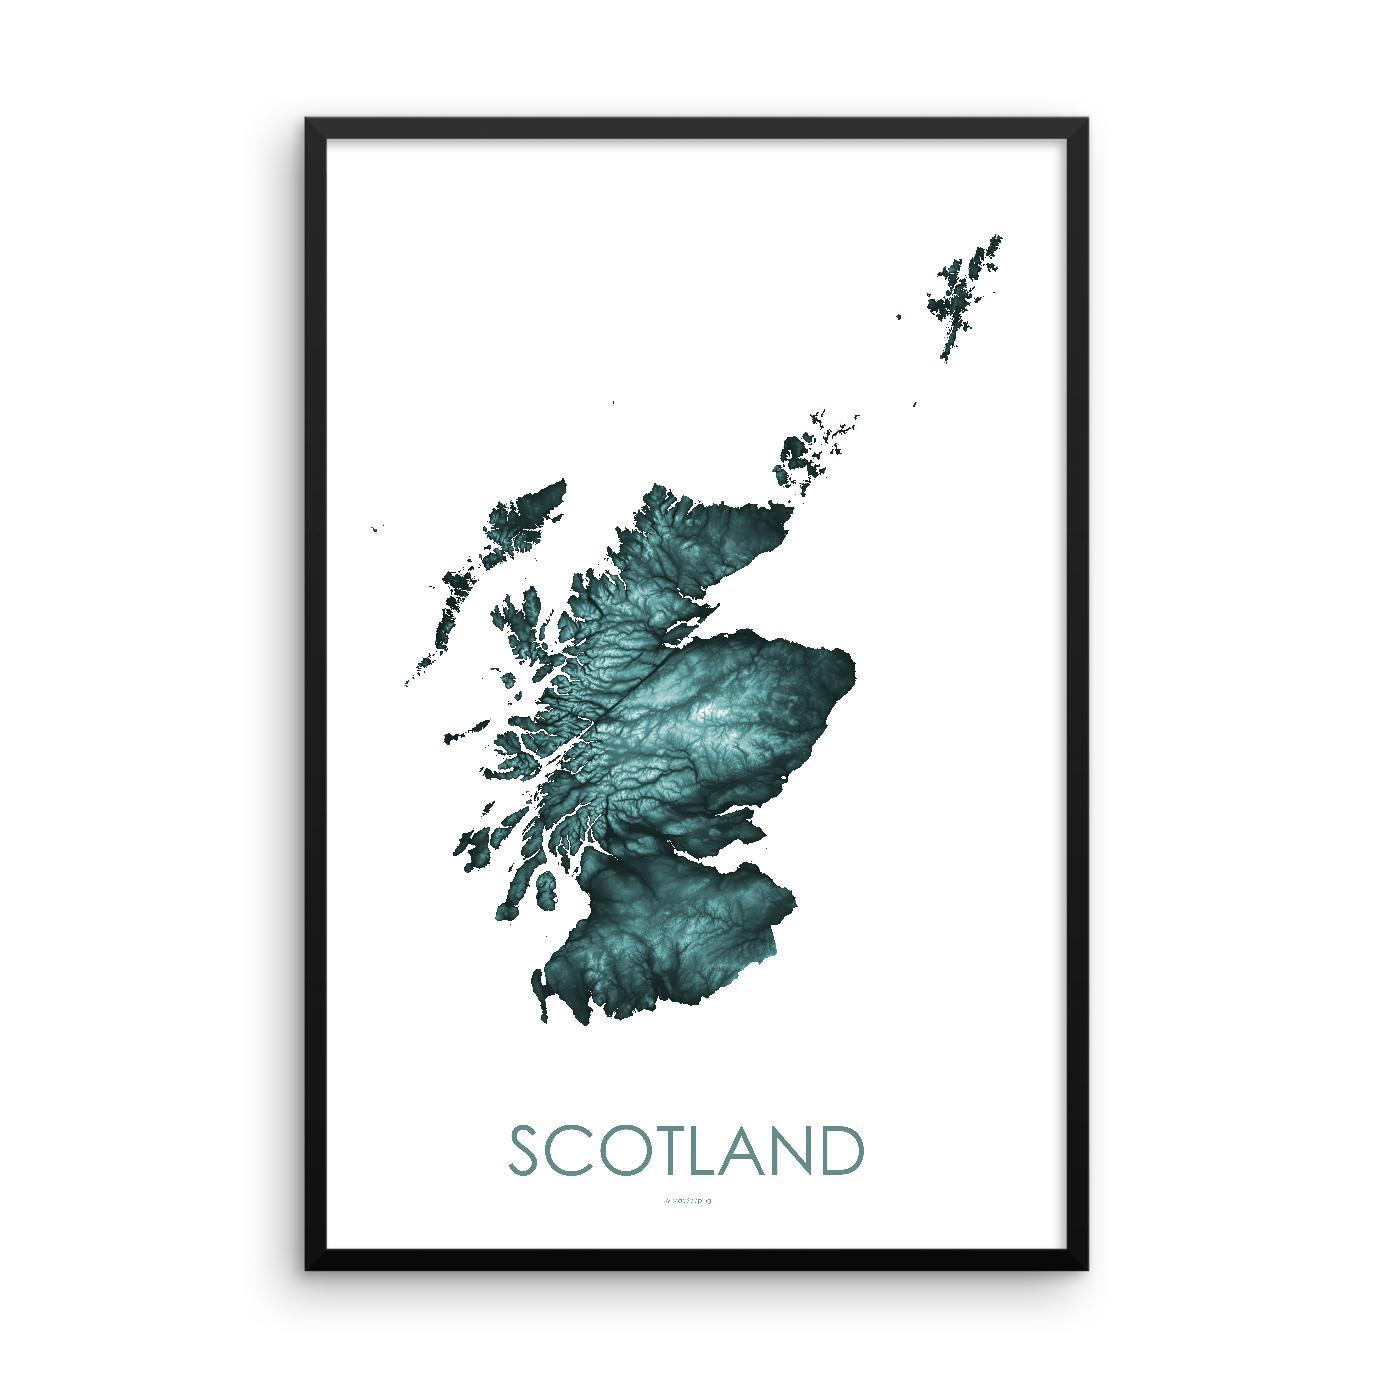 Scotland Poster Teal-topographic wall art map by MapScaping